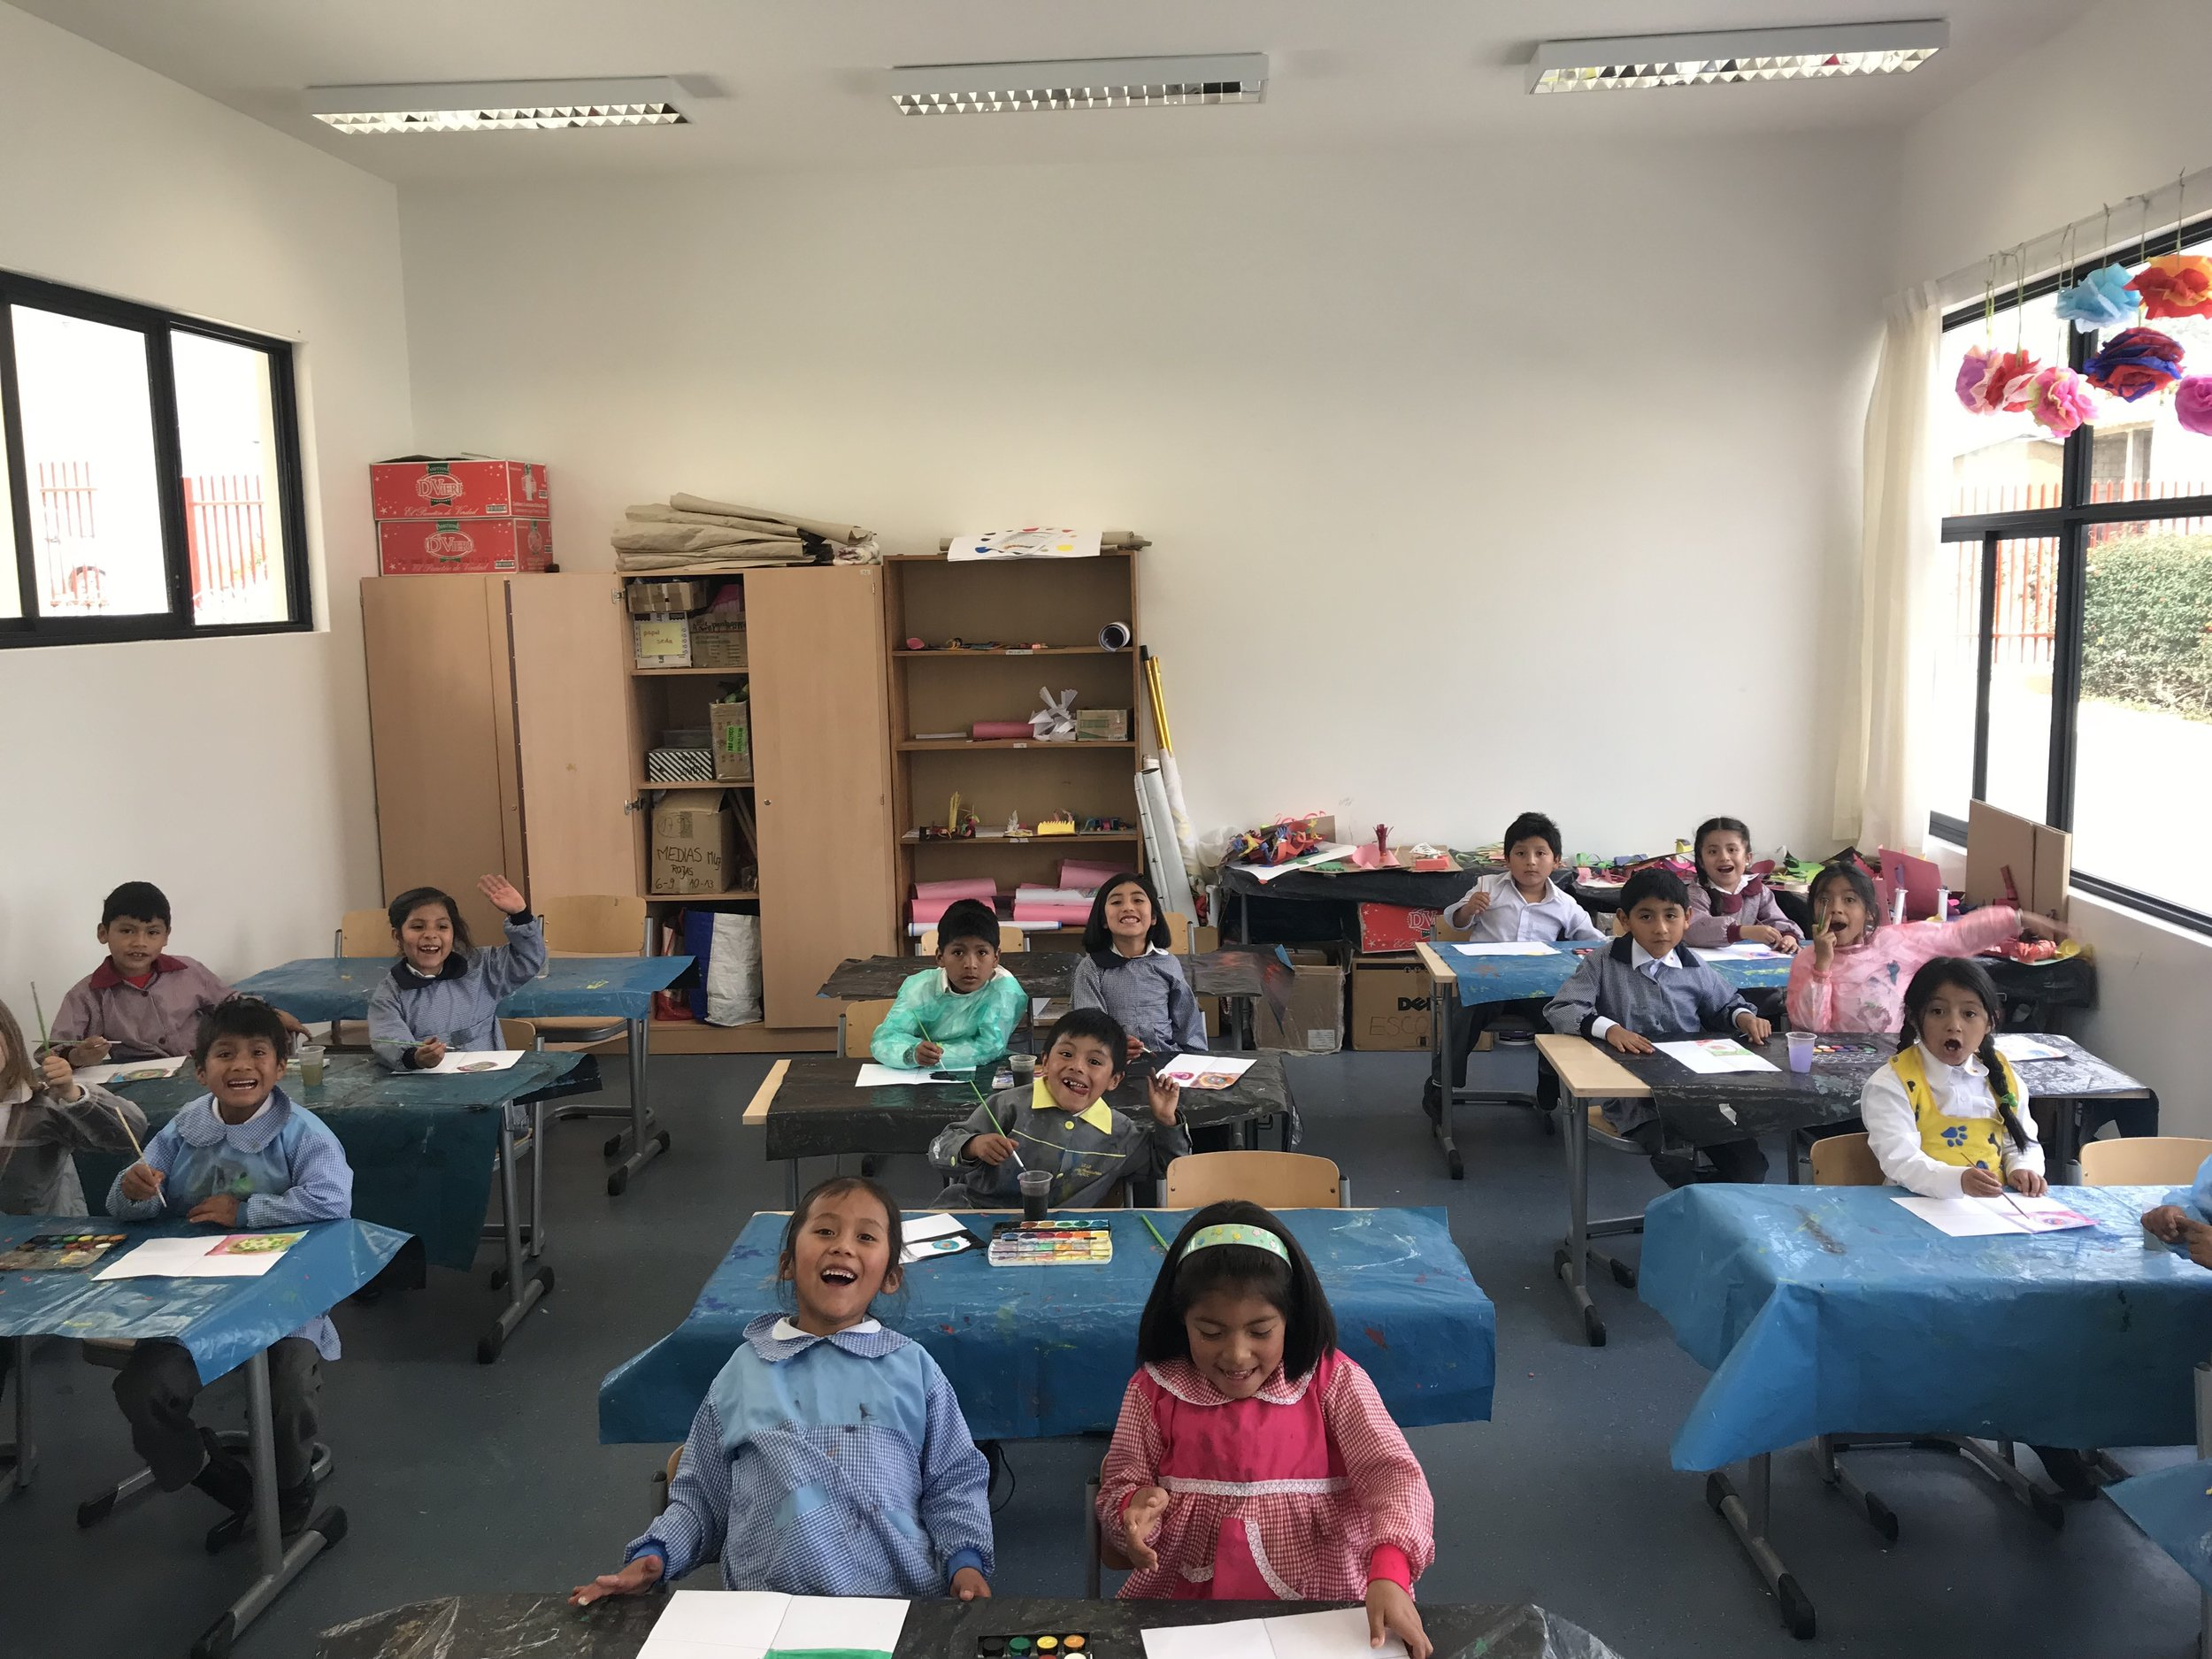 This is my first grade class (my favorite class), they love listening to Kids Bop Kids and dancing while they work (so cute). We were working on a mosaic with circles. They also did the pom poms on the windows.